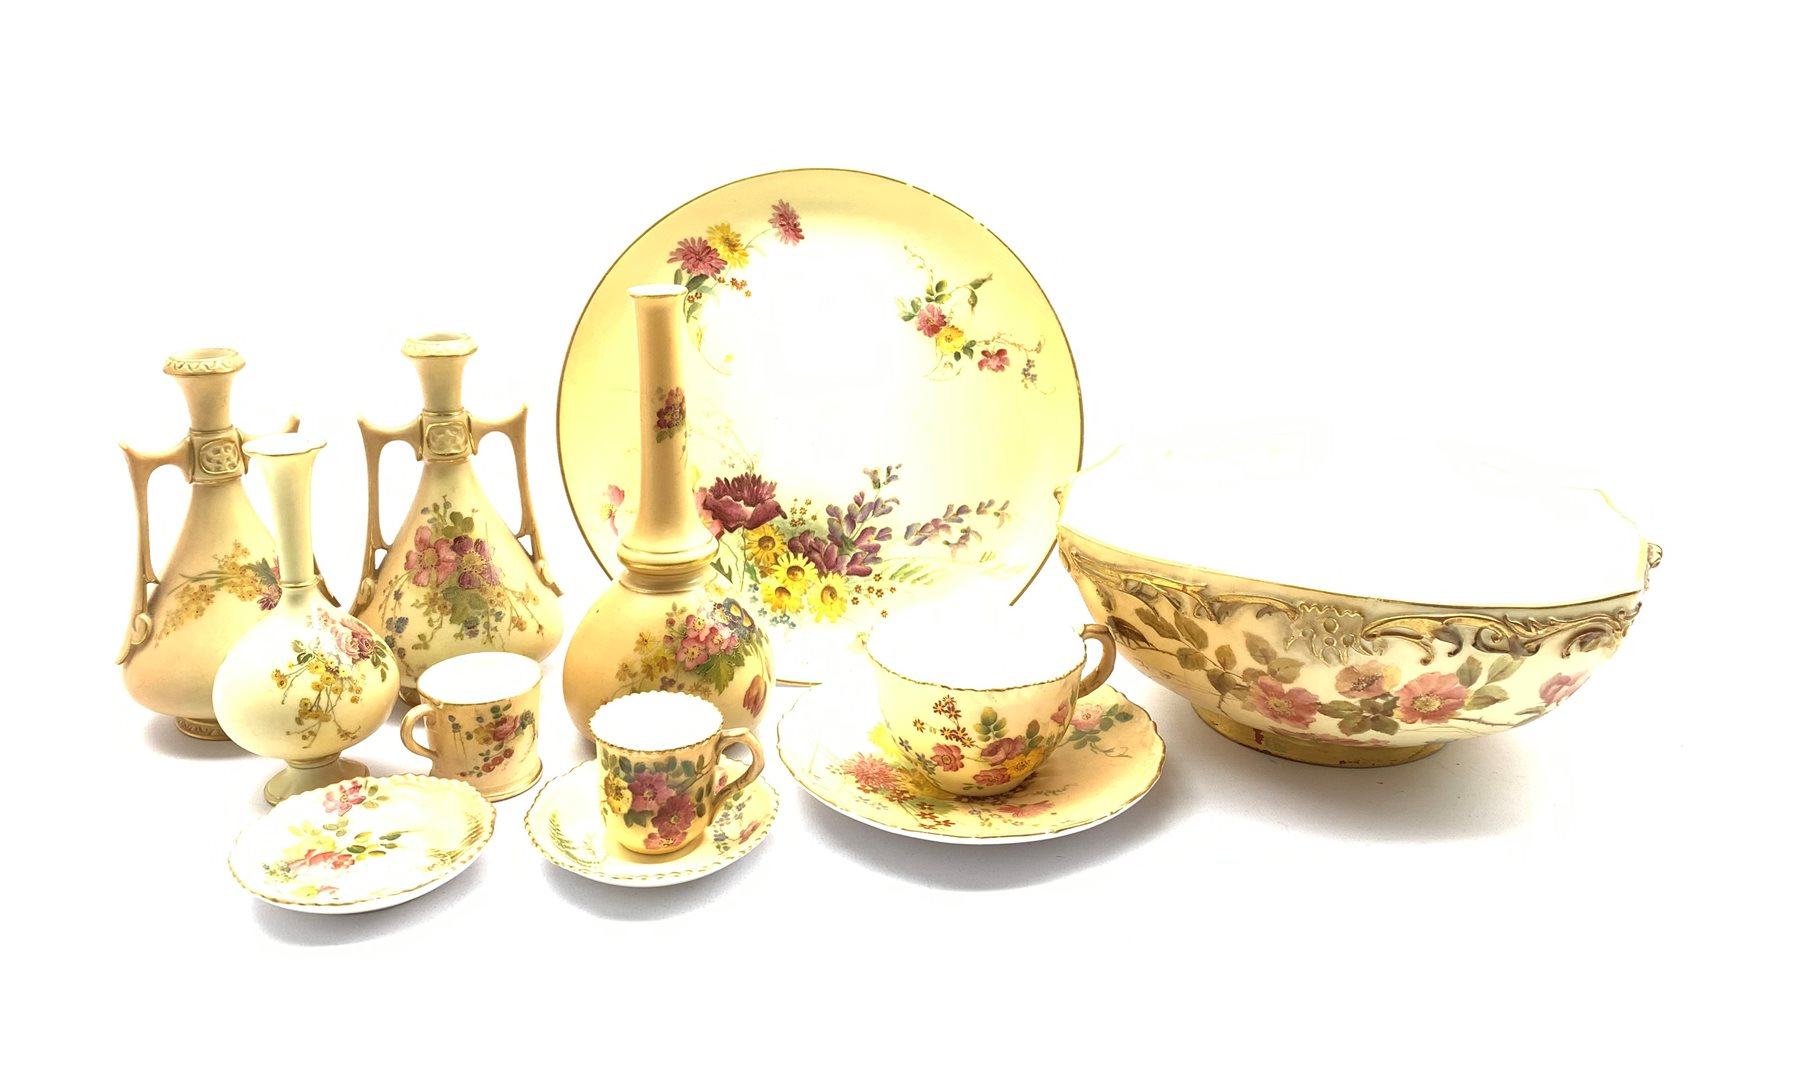 Collection of Royal Worcester blush ivory to include a miniature tankard, teacup and saucer, miniatu